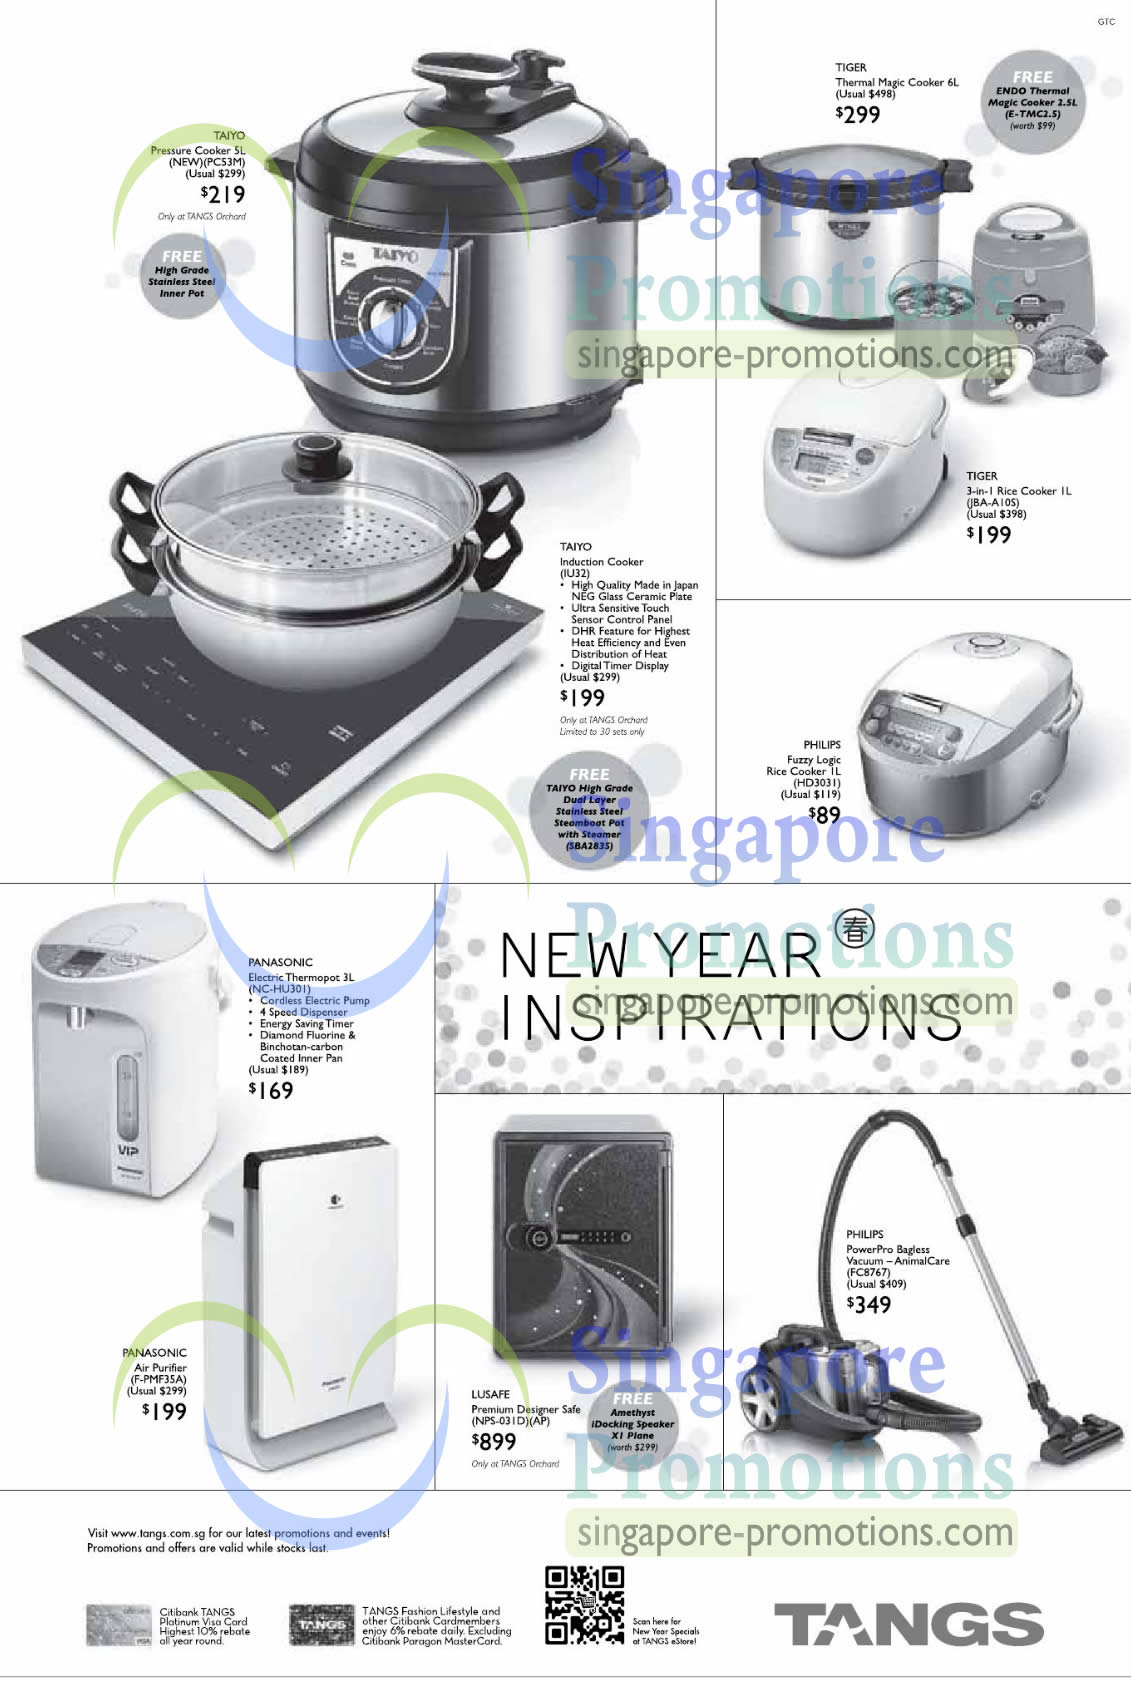 Taiyo PC53M Pressure Cooker, Taiyo IU32 Induction Cooker, Tiger JBA-AIOS Rice Cooker, Philips HD3031 Rice Cooker, Panasonic NC-HU301 Electric Thermopot, Panasonic F-PMF35A Air Purifier, Lusafe NPS-031D Safe, Philips FC8767 PowerPro Bagless Vacuum Cleaner